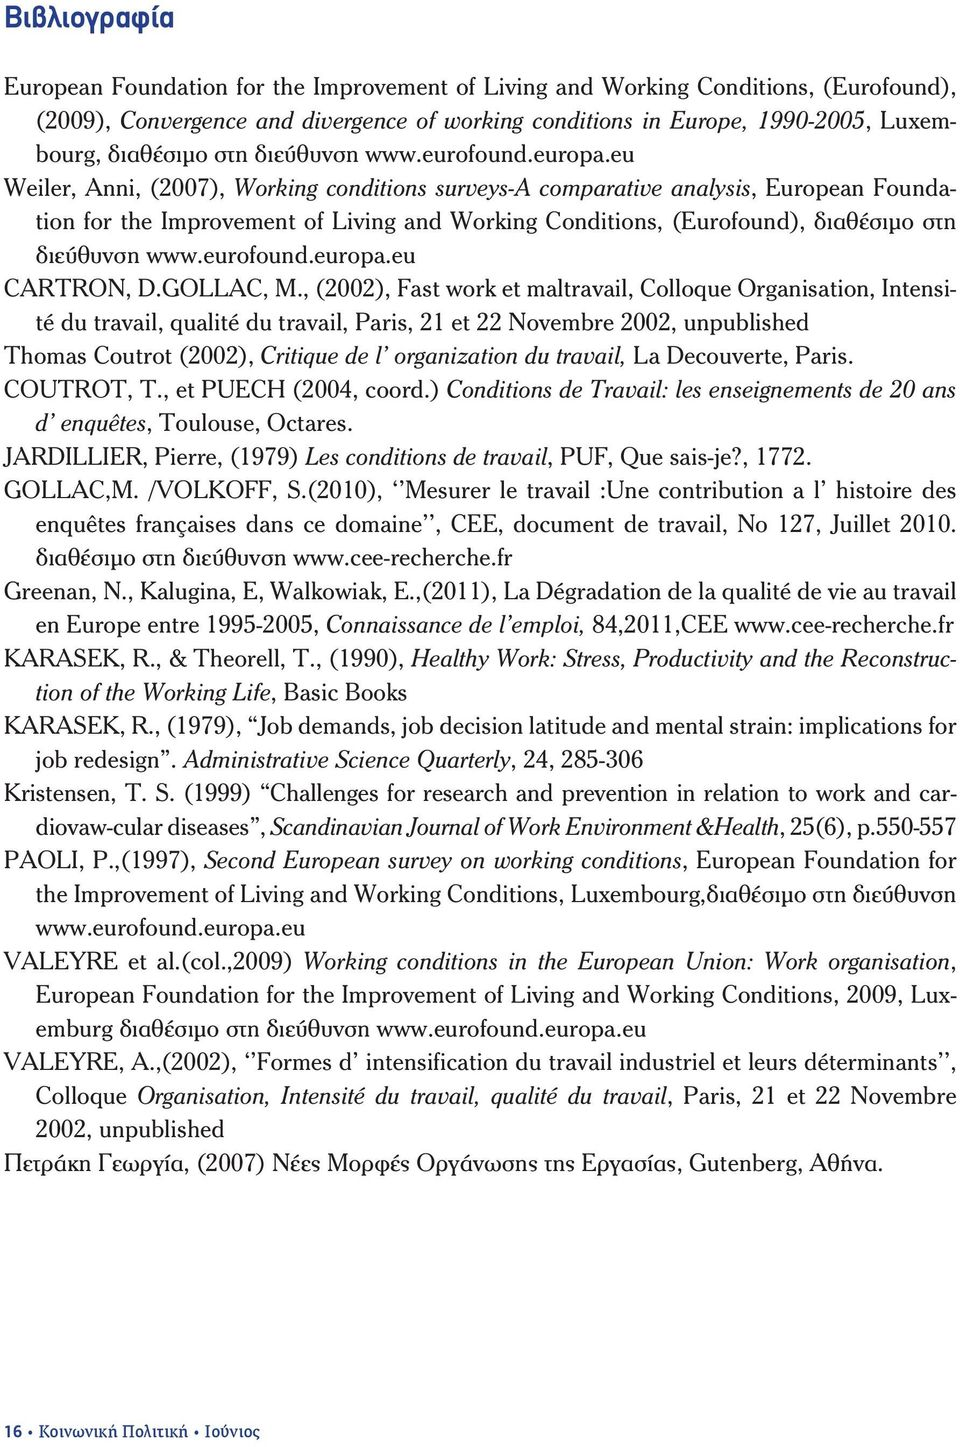 eu Weiler, Anni, (2007), Working conditions surveys-a comparative analysis, Εuropean Foundation for the Improvement of Living and Working Conditions, (Eurofound), eu CARTRON, D.GOLLAC, M.